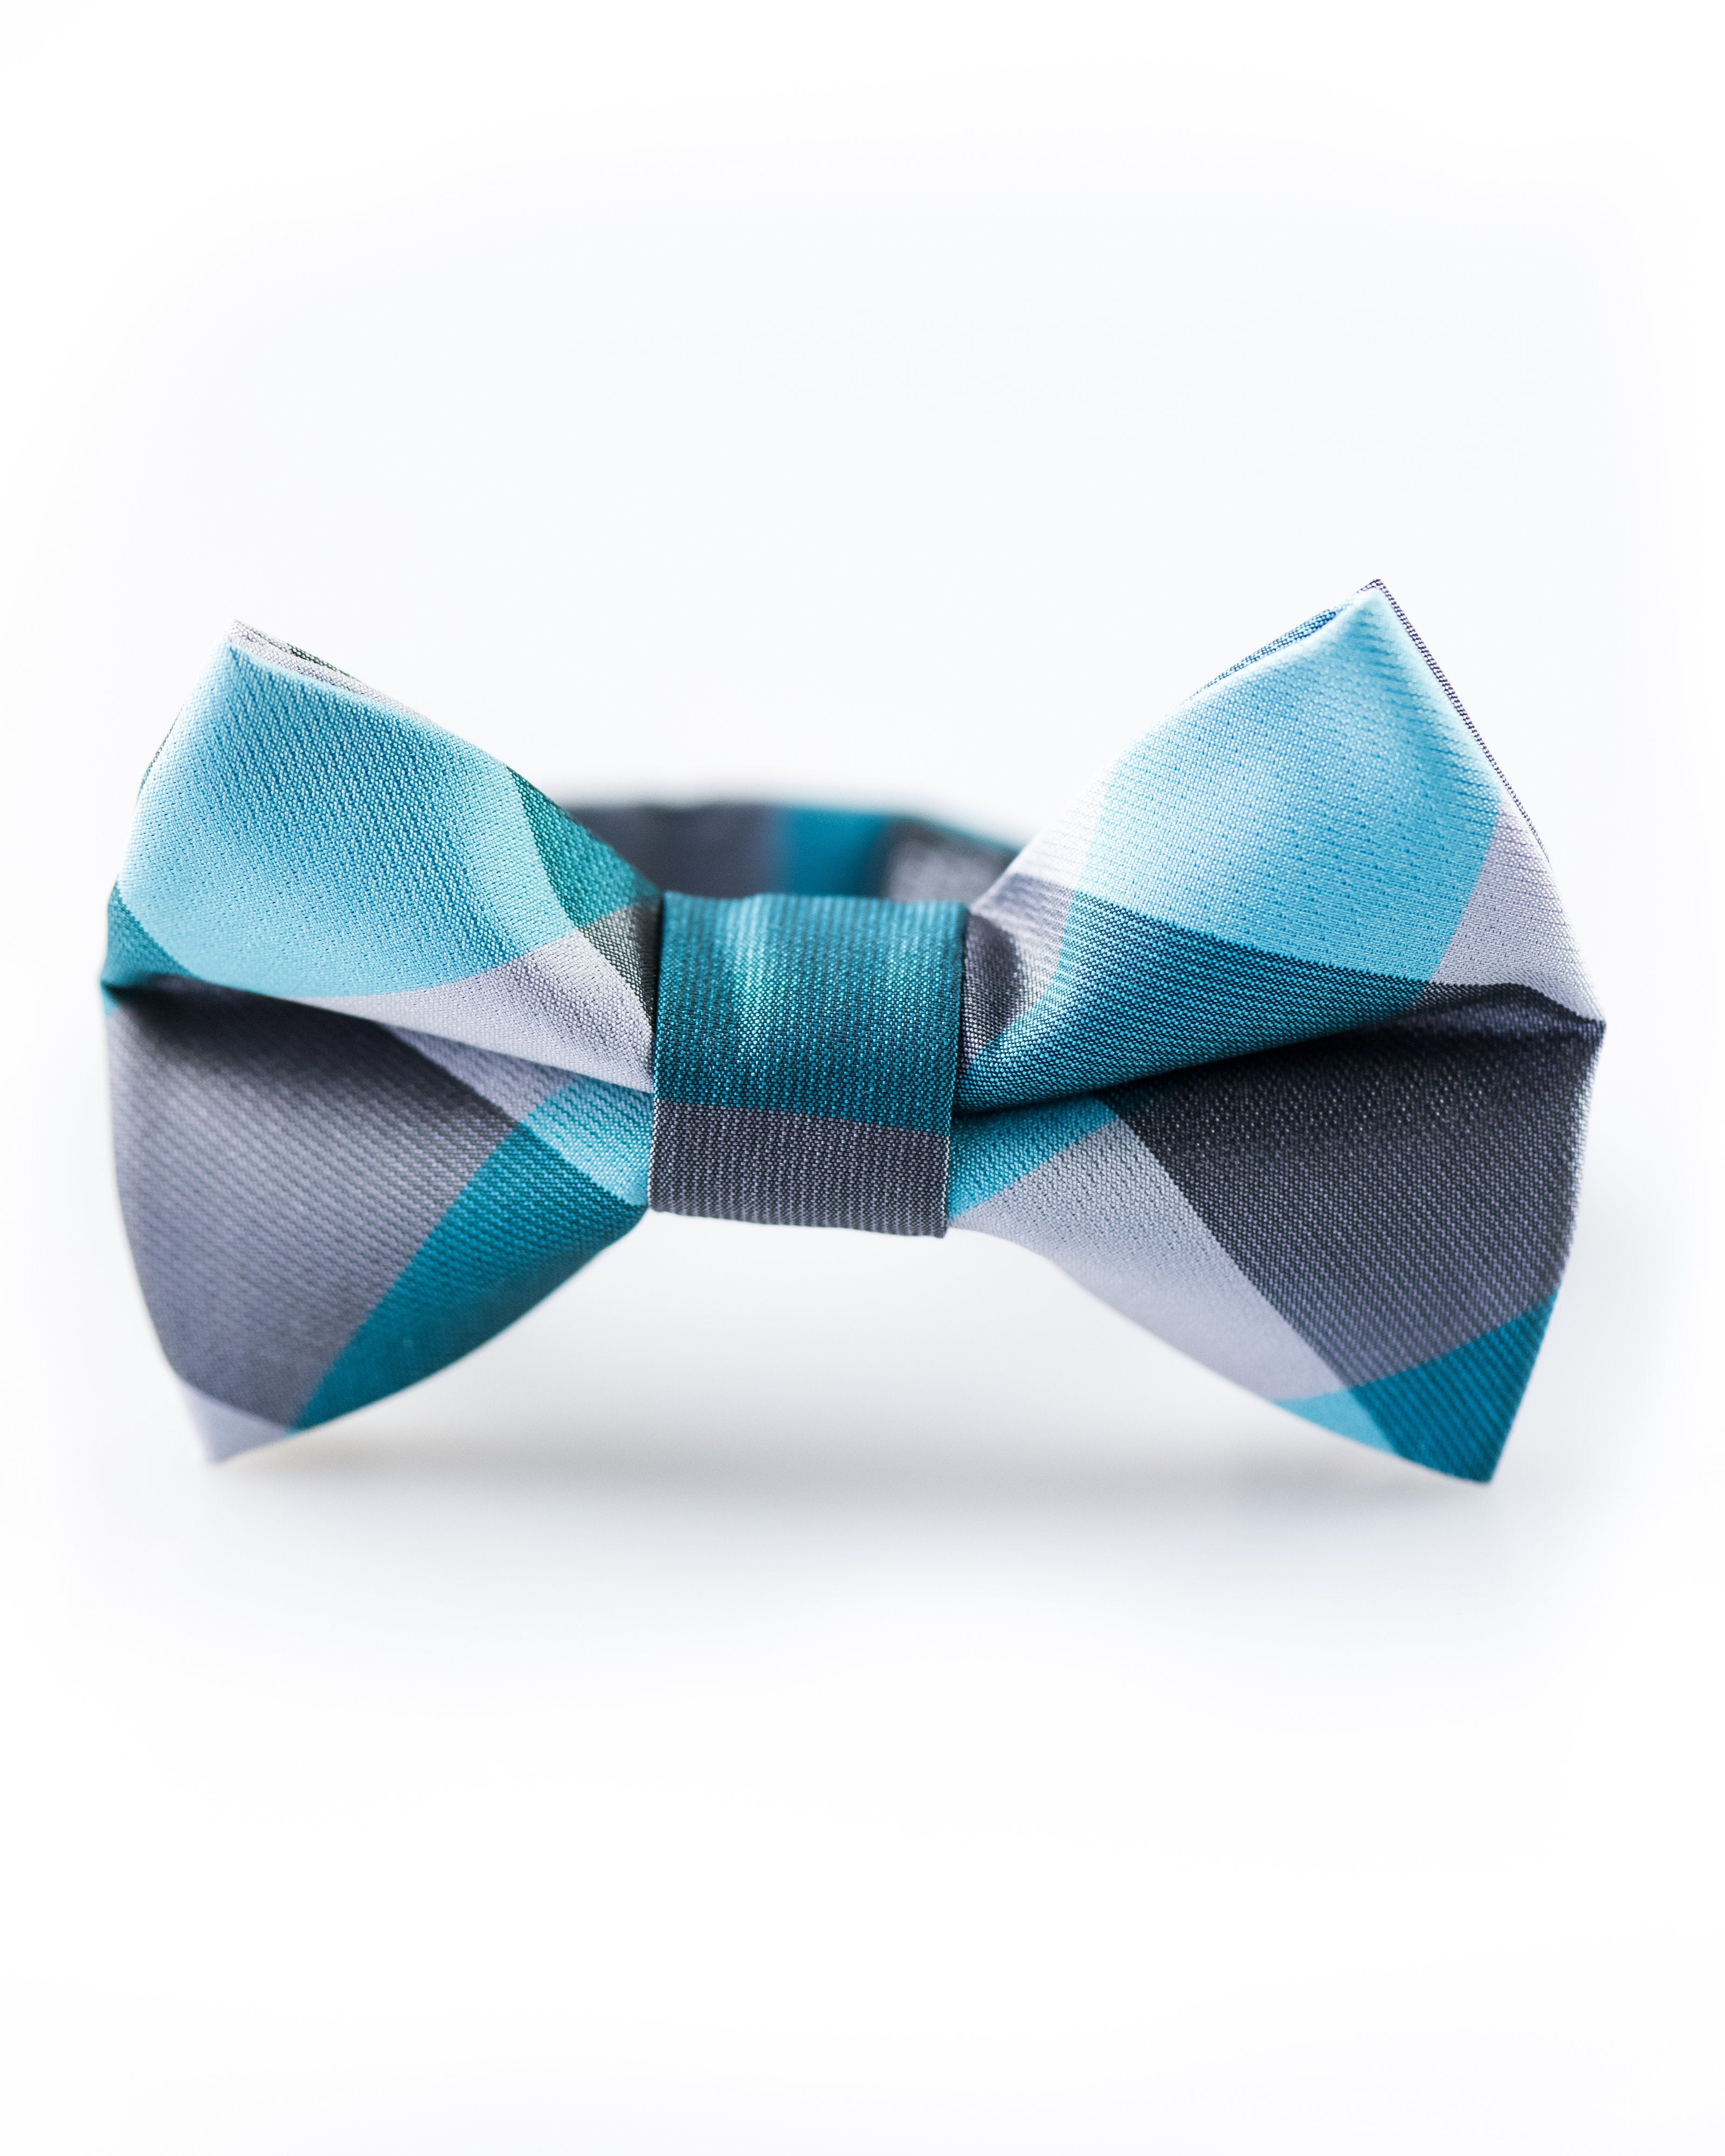 turquoise-and-silver-check-bow-tie.jpg